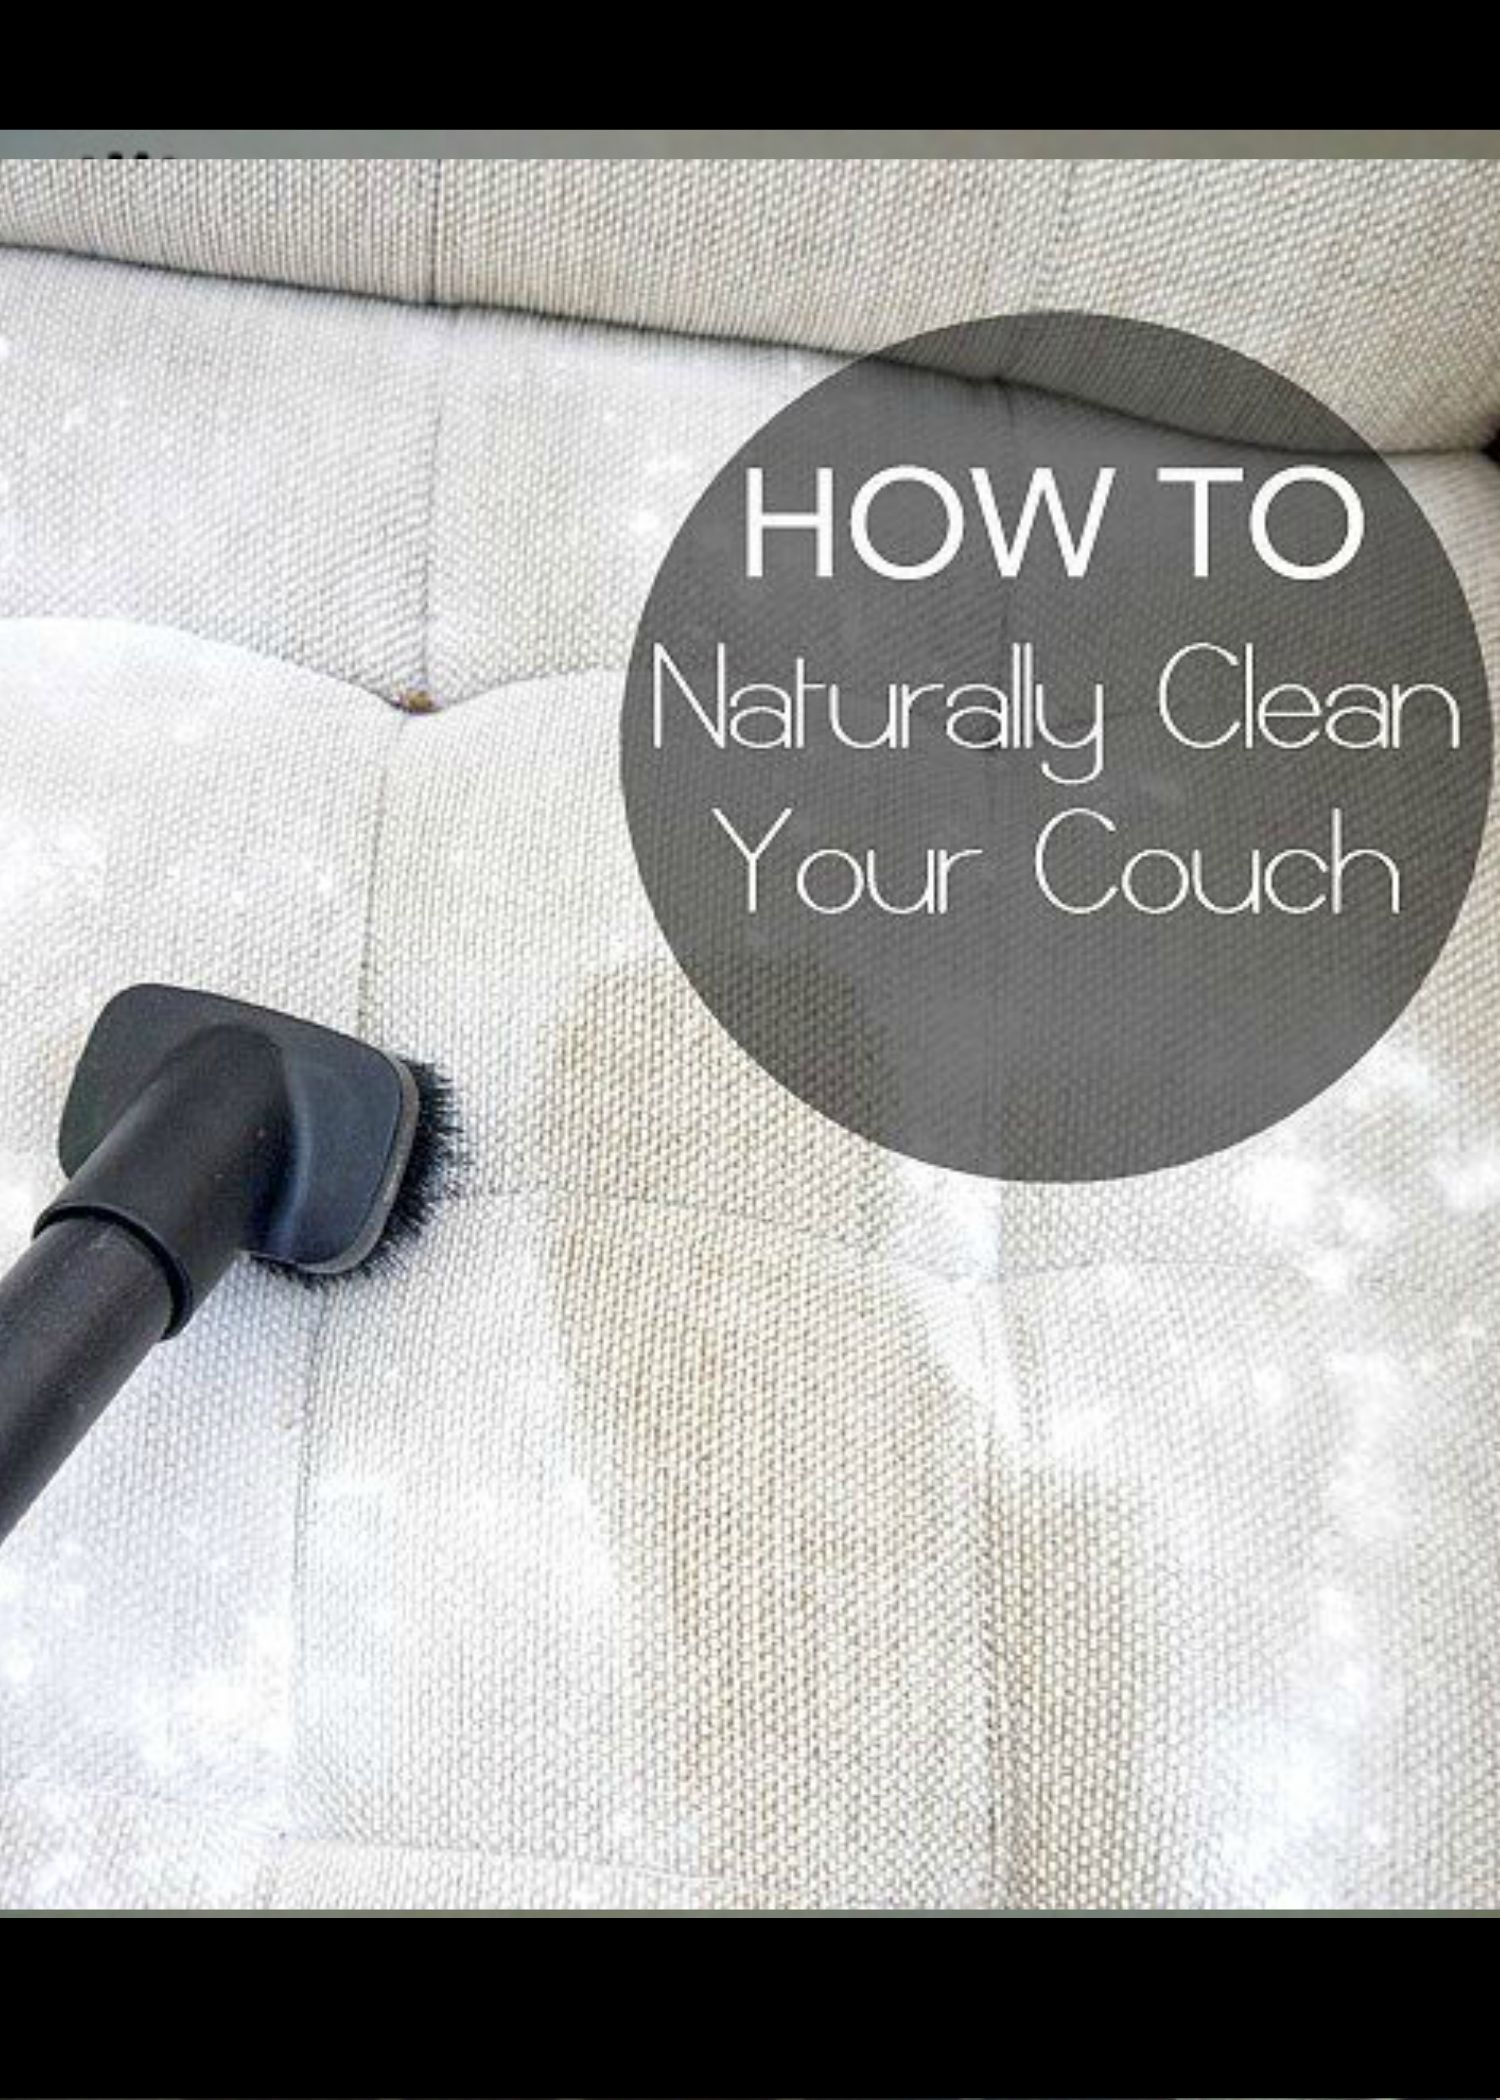 polyester sofa washing machine home furniture online how to deep clean your couch easily and naturally